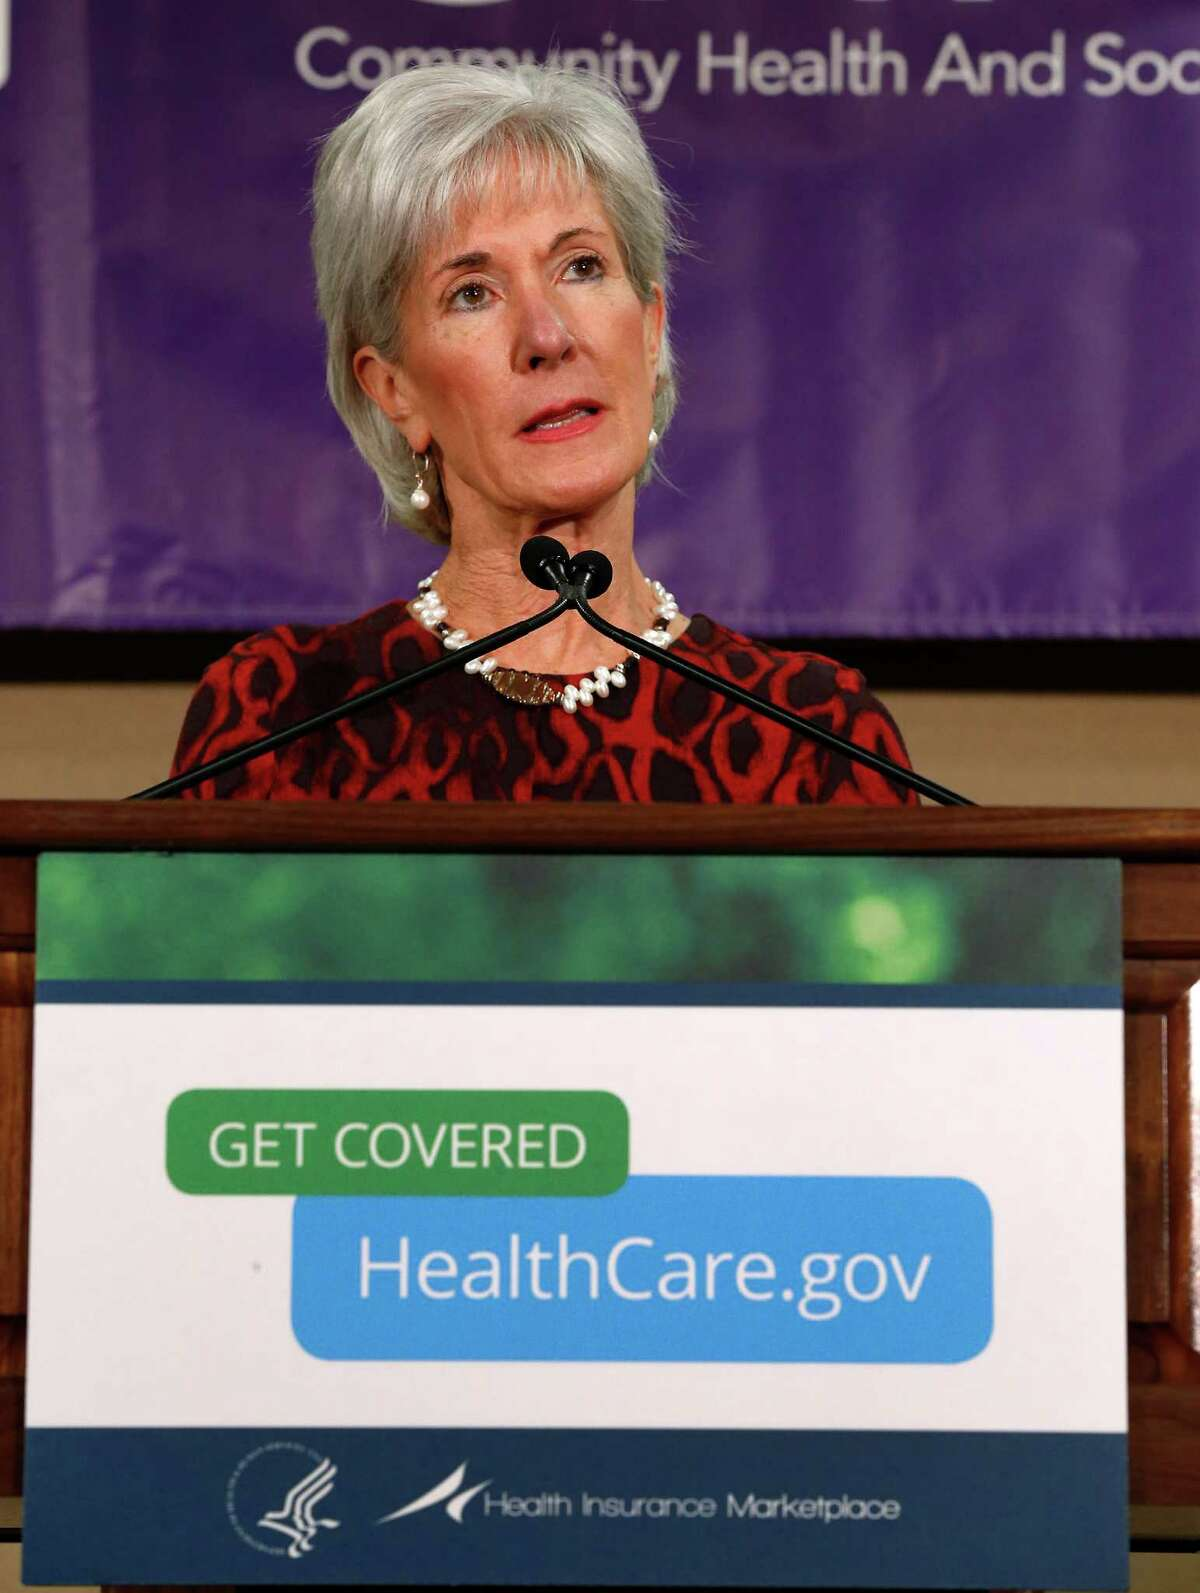 Health and Human Services Secretary Kathleen Sebelius speaks about the Health Insurance Marketplace at the Community Health and Social Services Center in Detroit Friday, Nov. 15, 2013. Sebelius says she's confident a troubled federal website will work much better by month's end so people can sign up for health insurance under the Affordable Care Act. (AP Photo/Paul Sancya)